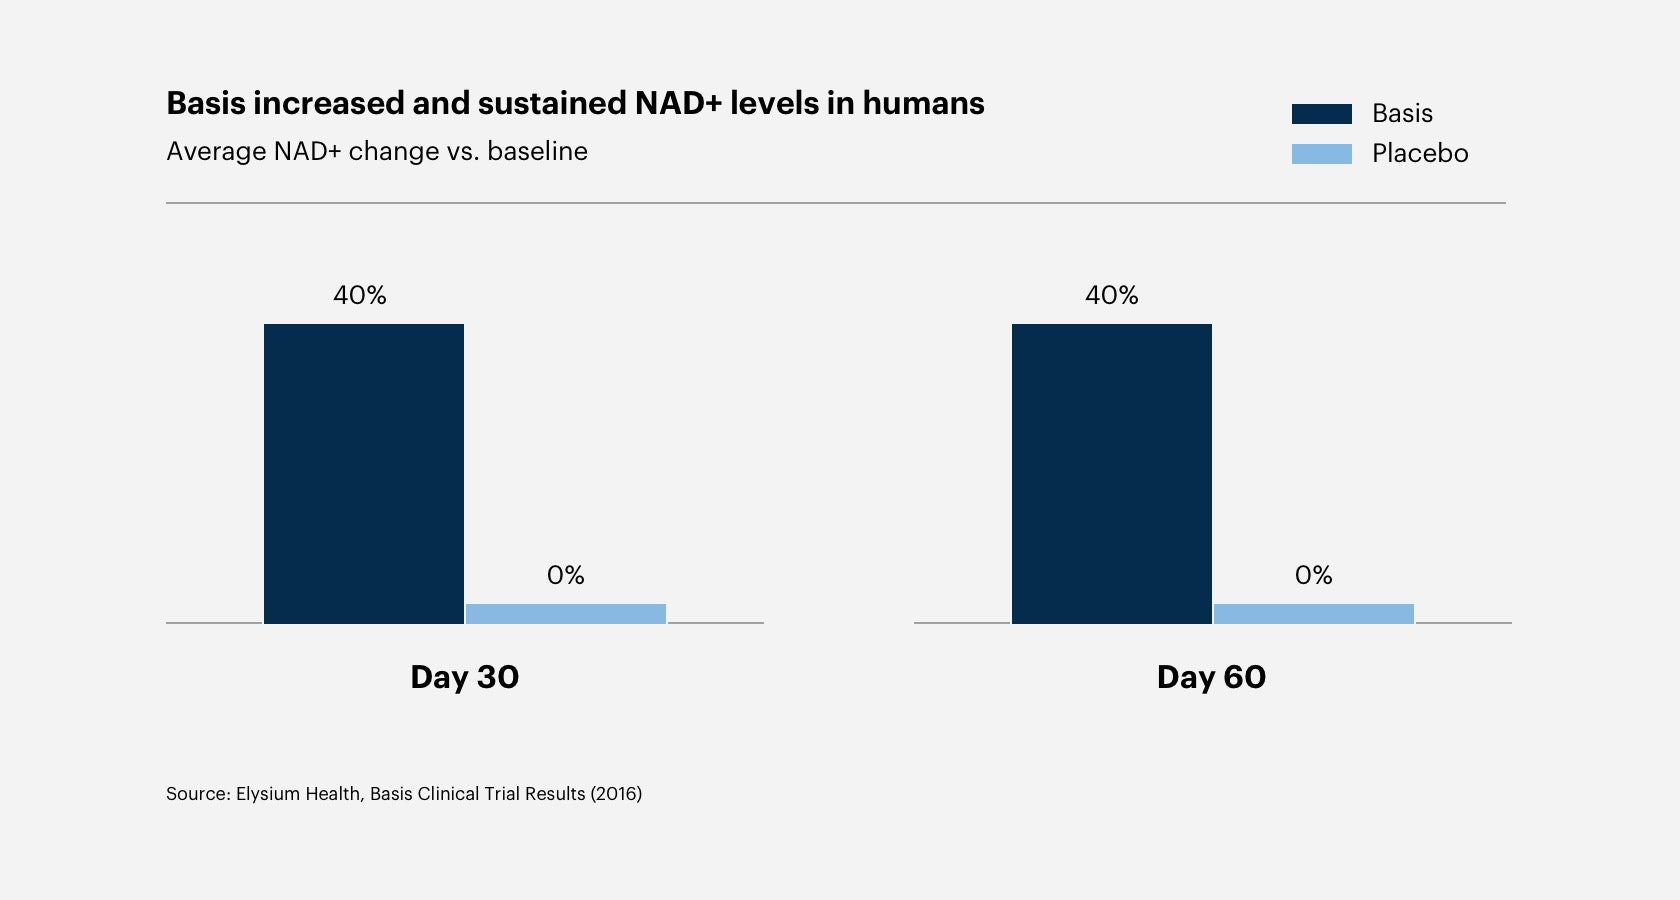 Basis increased and sustained NAD+ levels in humans